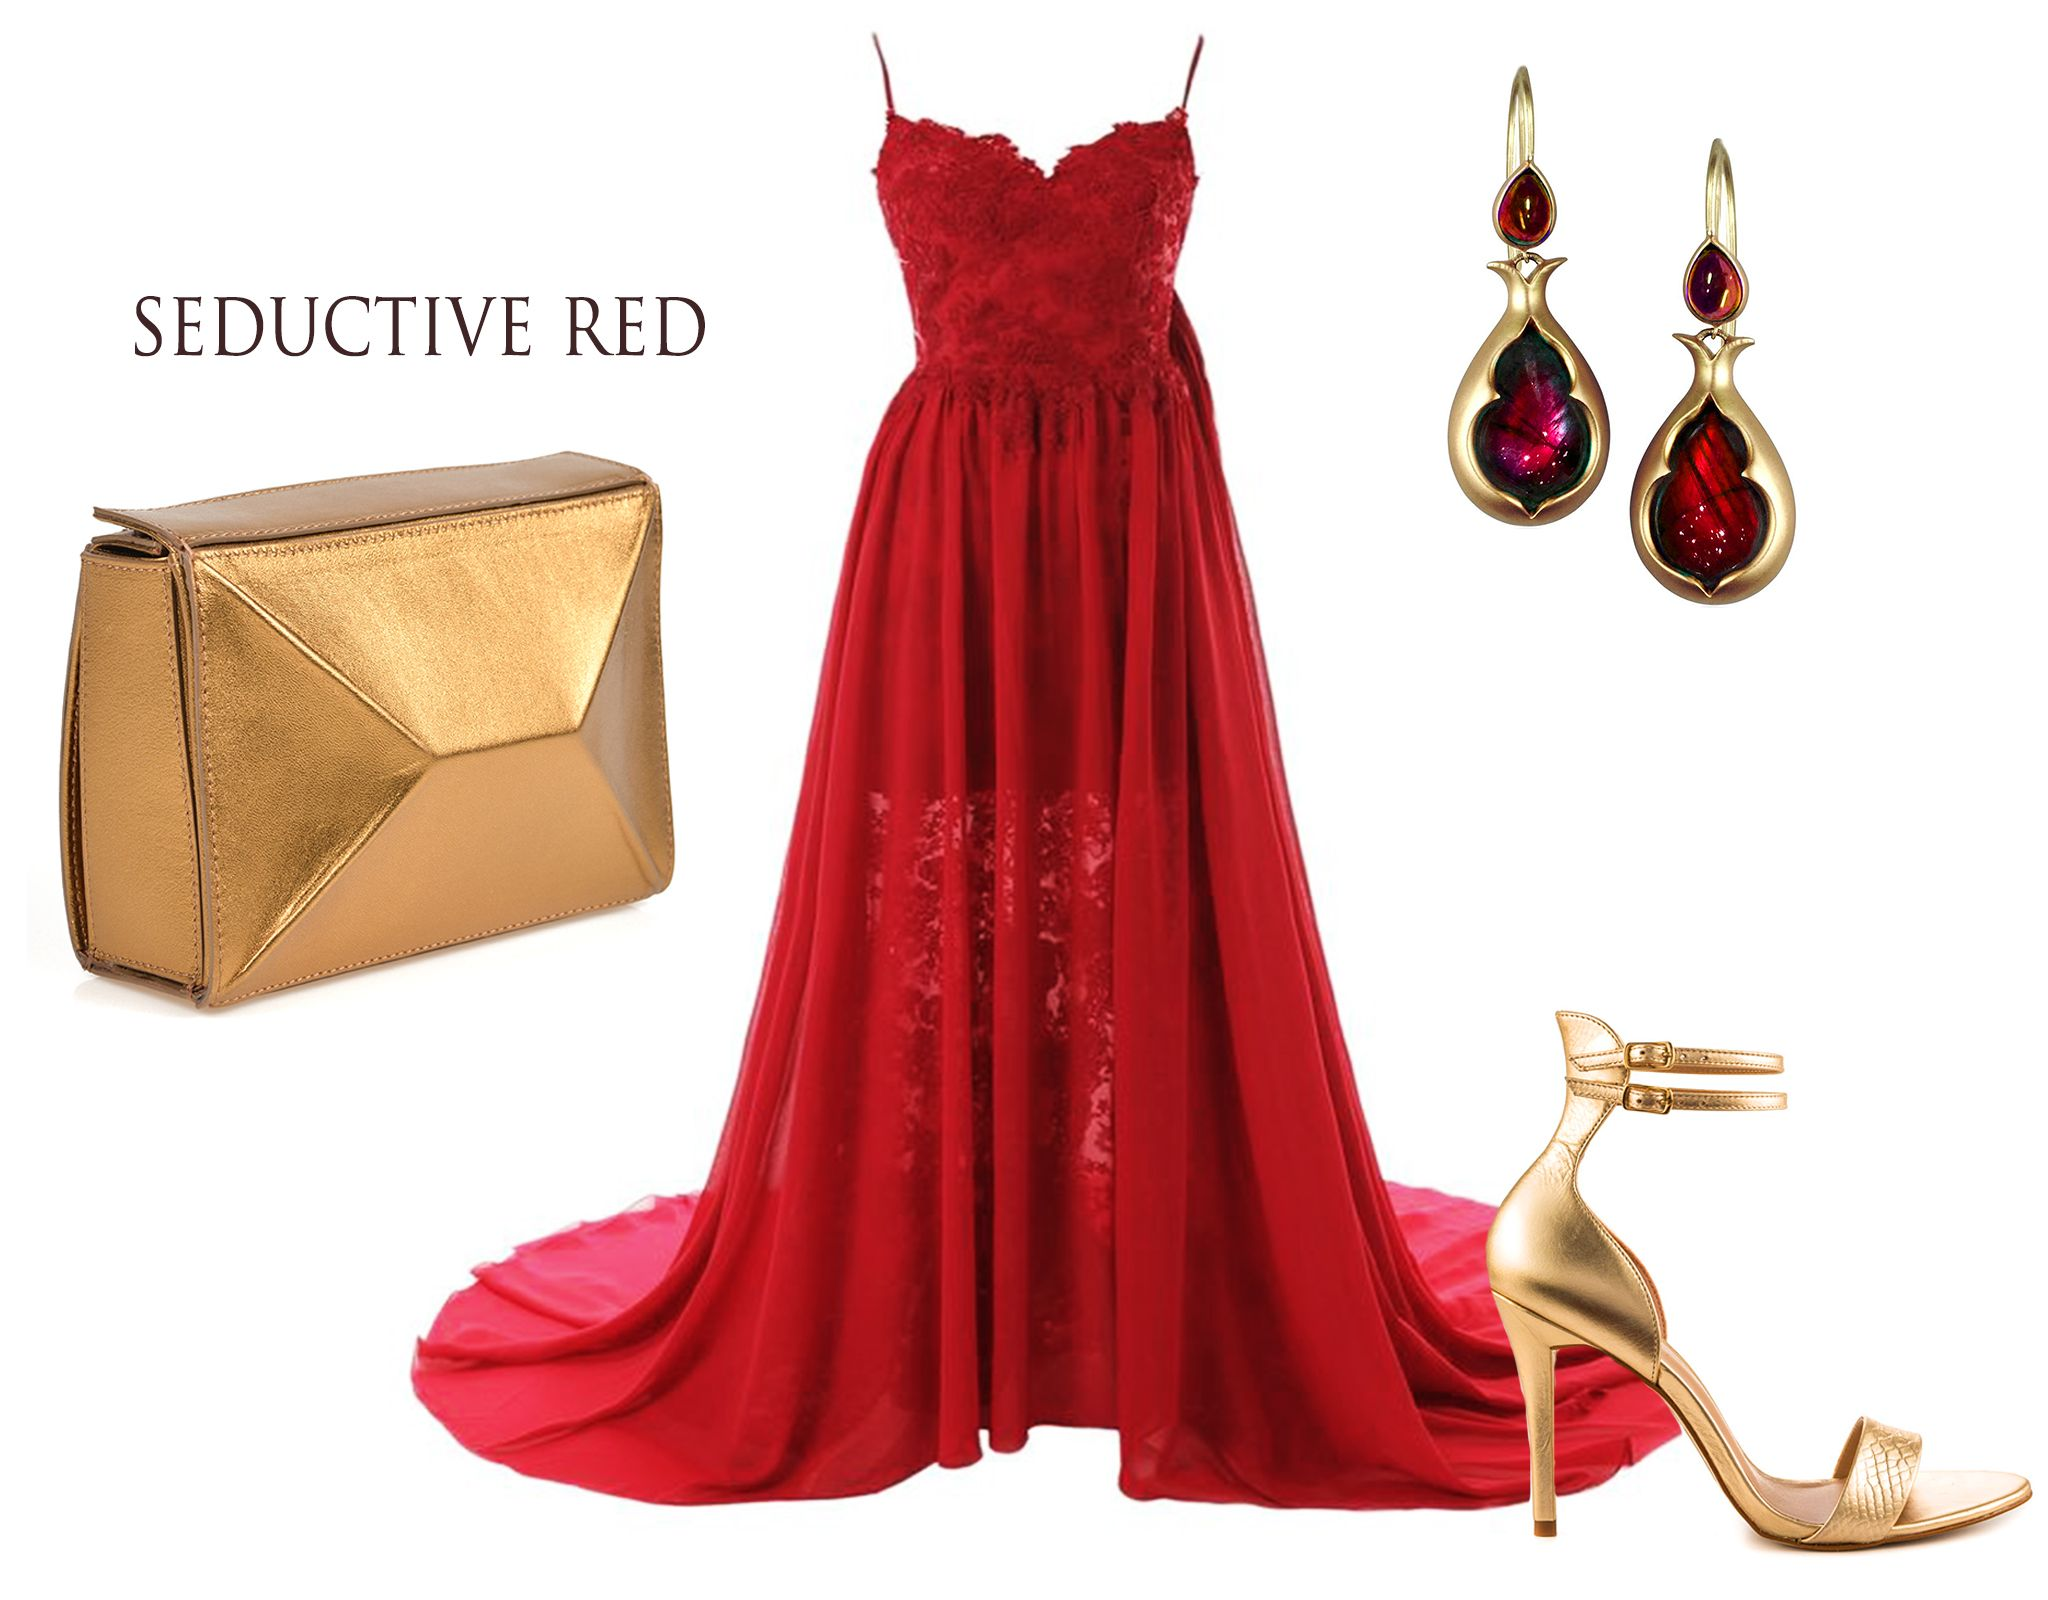 Every elegant dress needs to be combined with the perfect luxury accessory. Evening red dresses go wonderfully with leather clutches with metallic effects. The Sofia golden clutch can offer your amazing look a remarkable refinement.